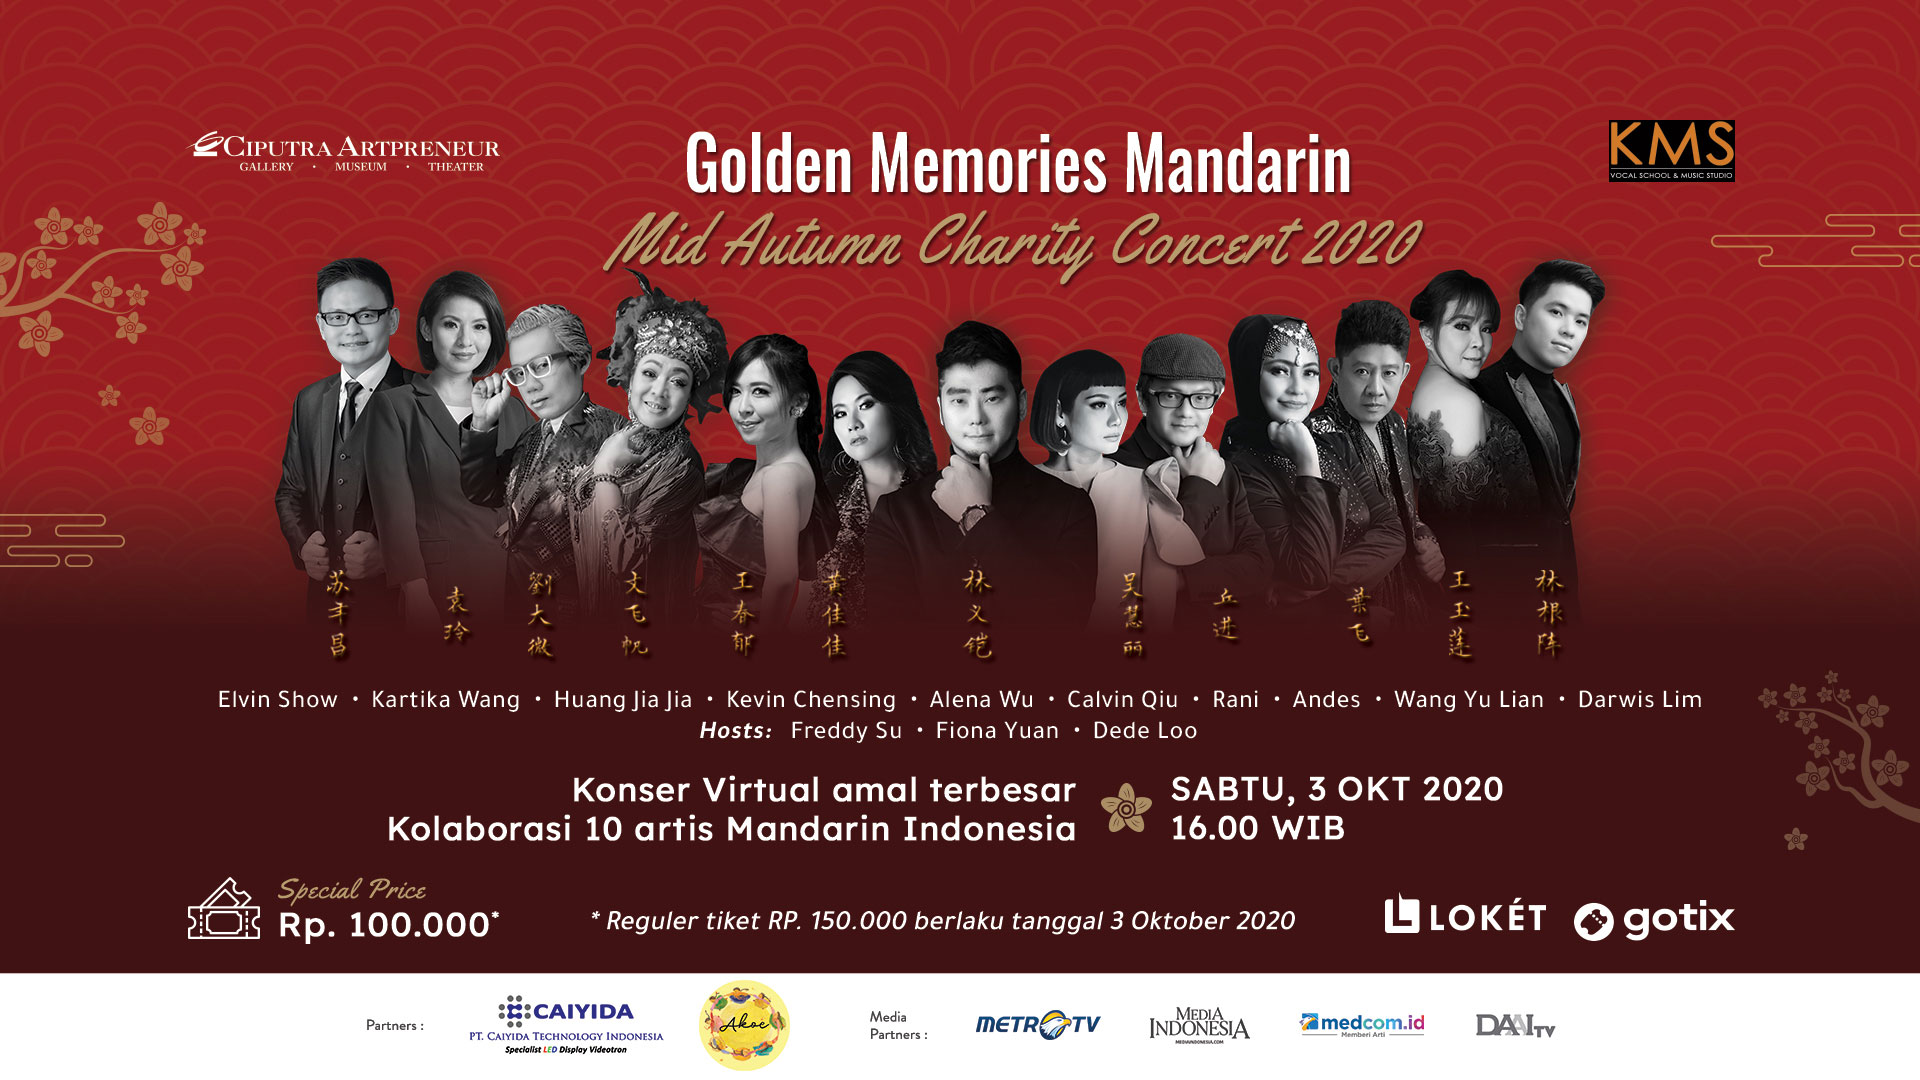 Golden Memories Mandarin